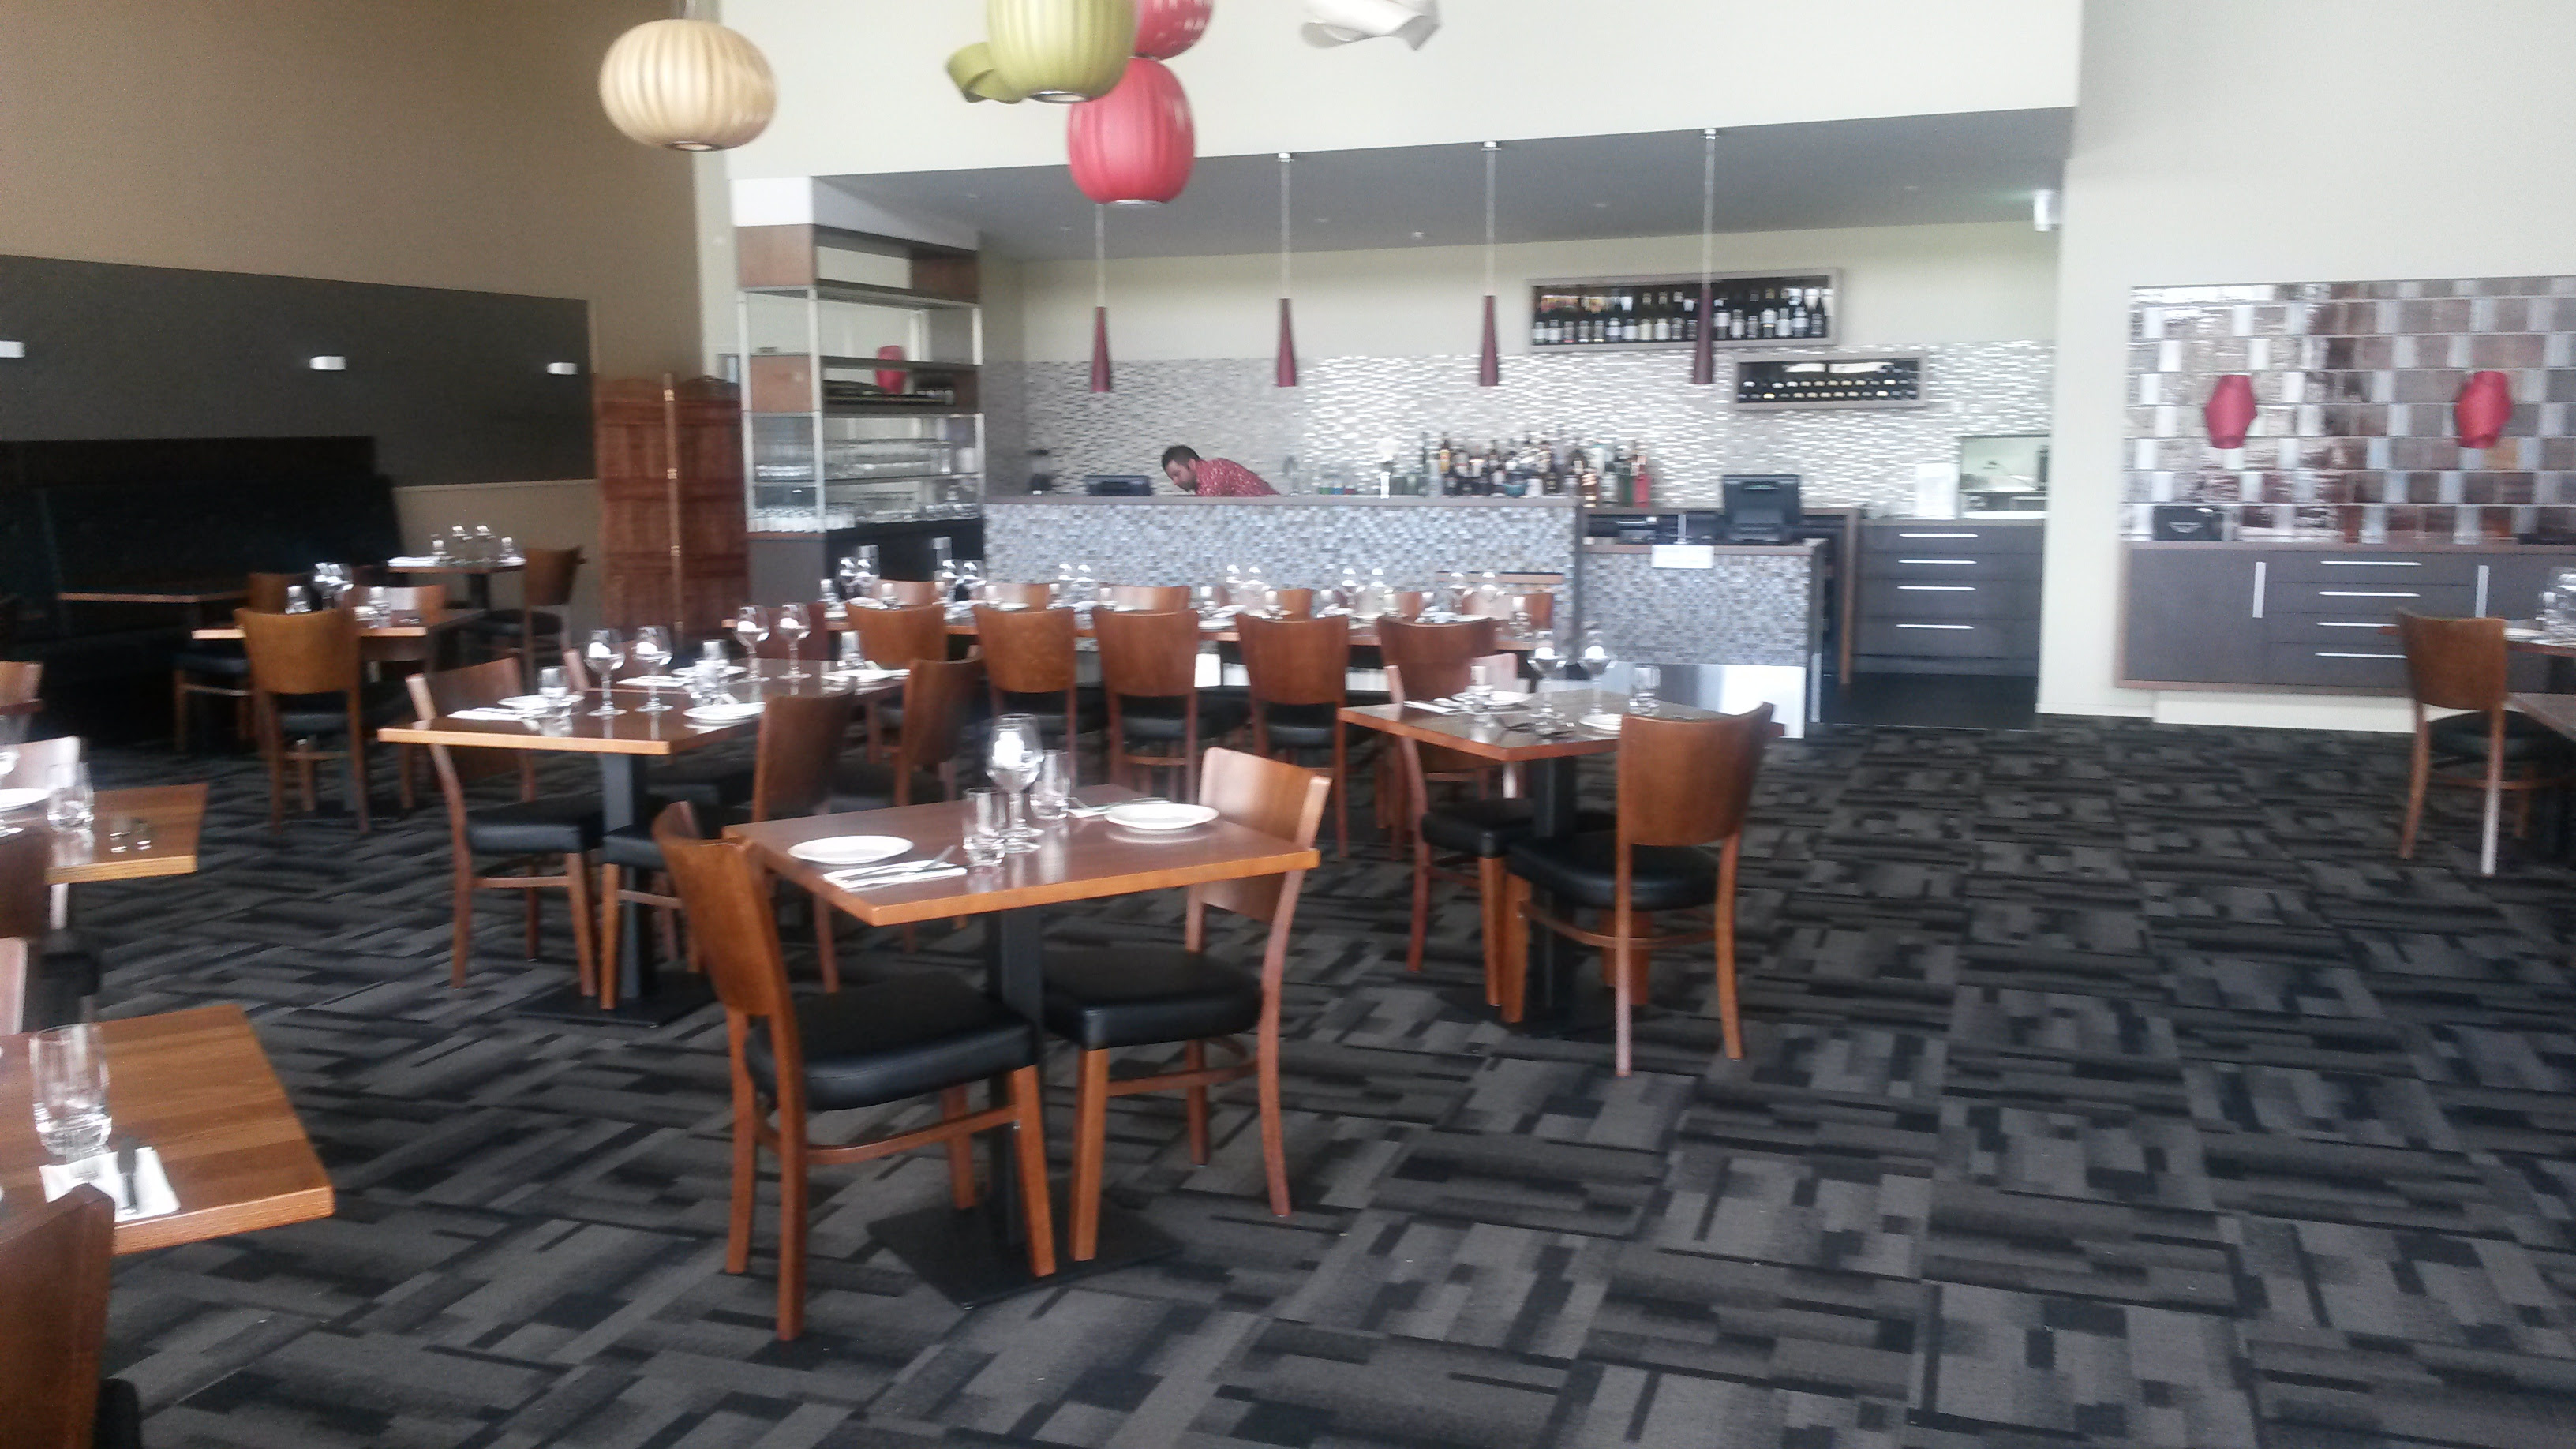 Commercial Carpet Tiles For Restaurants